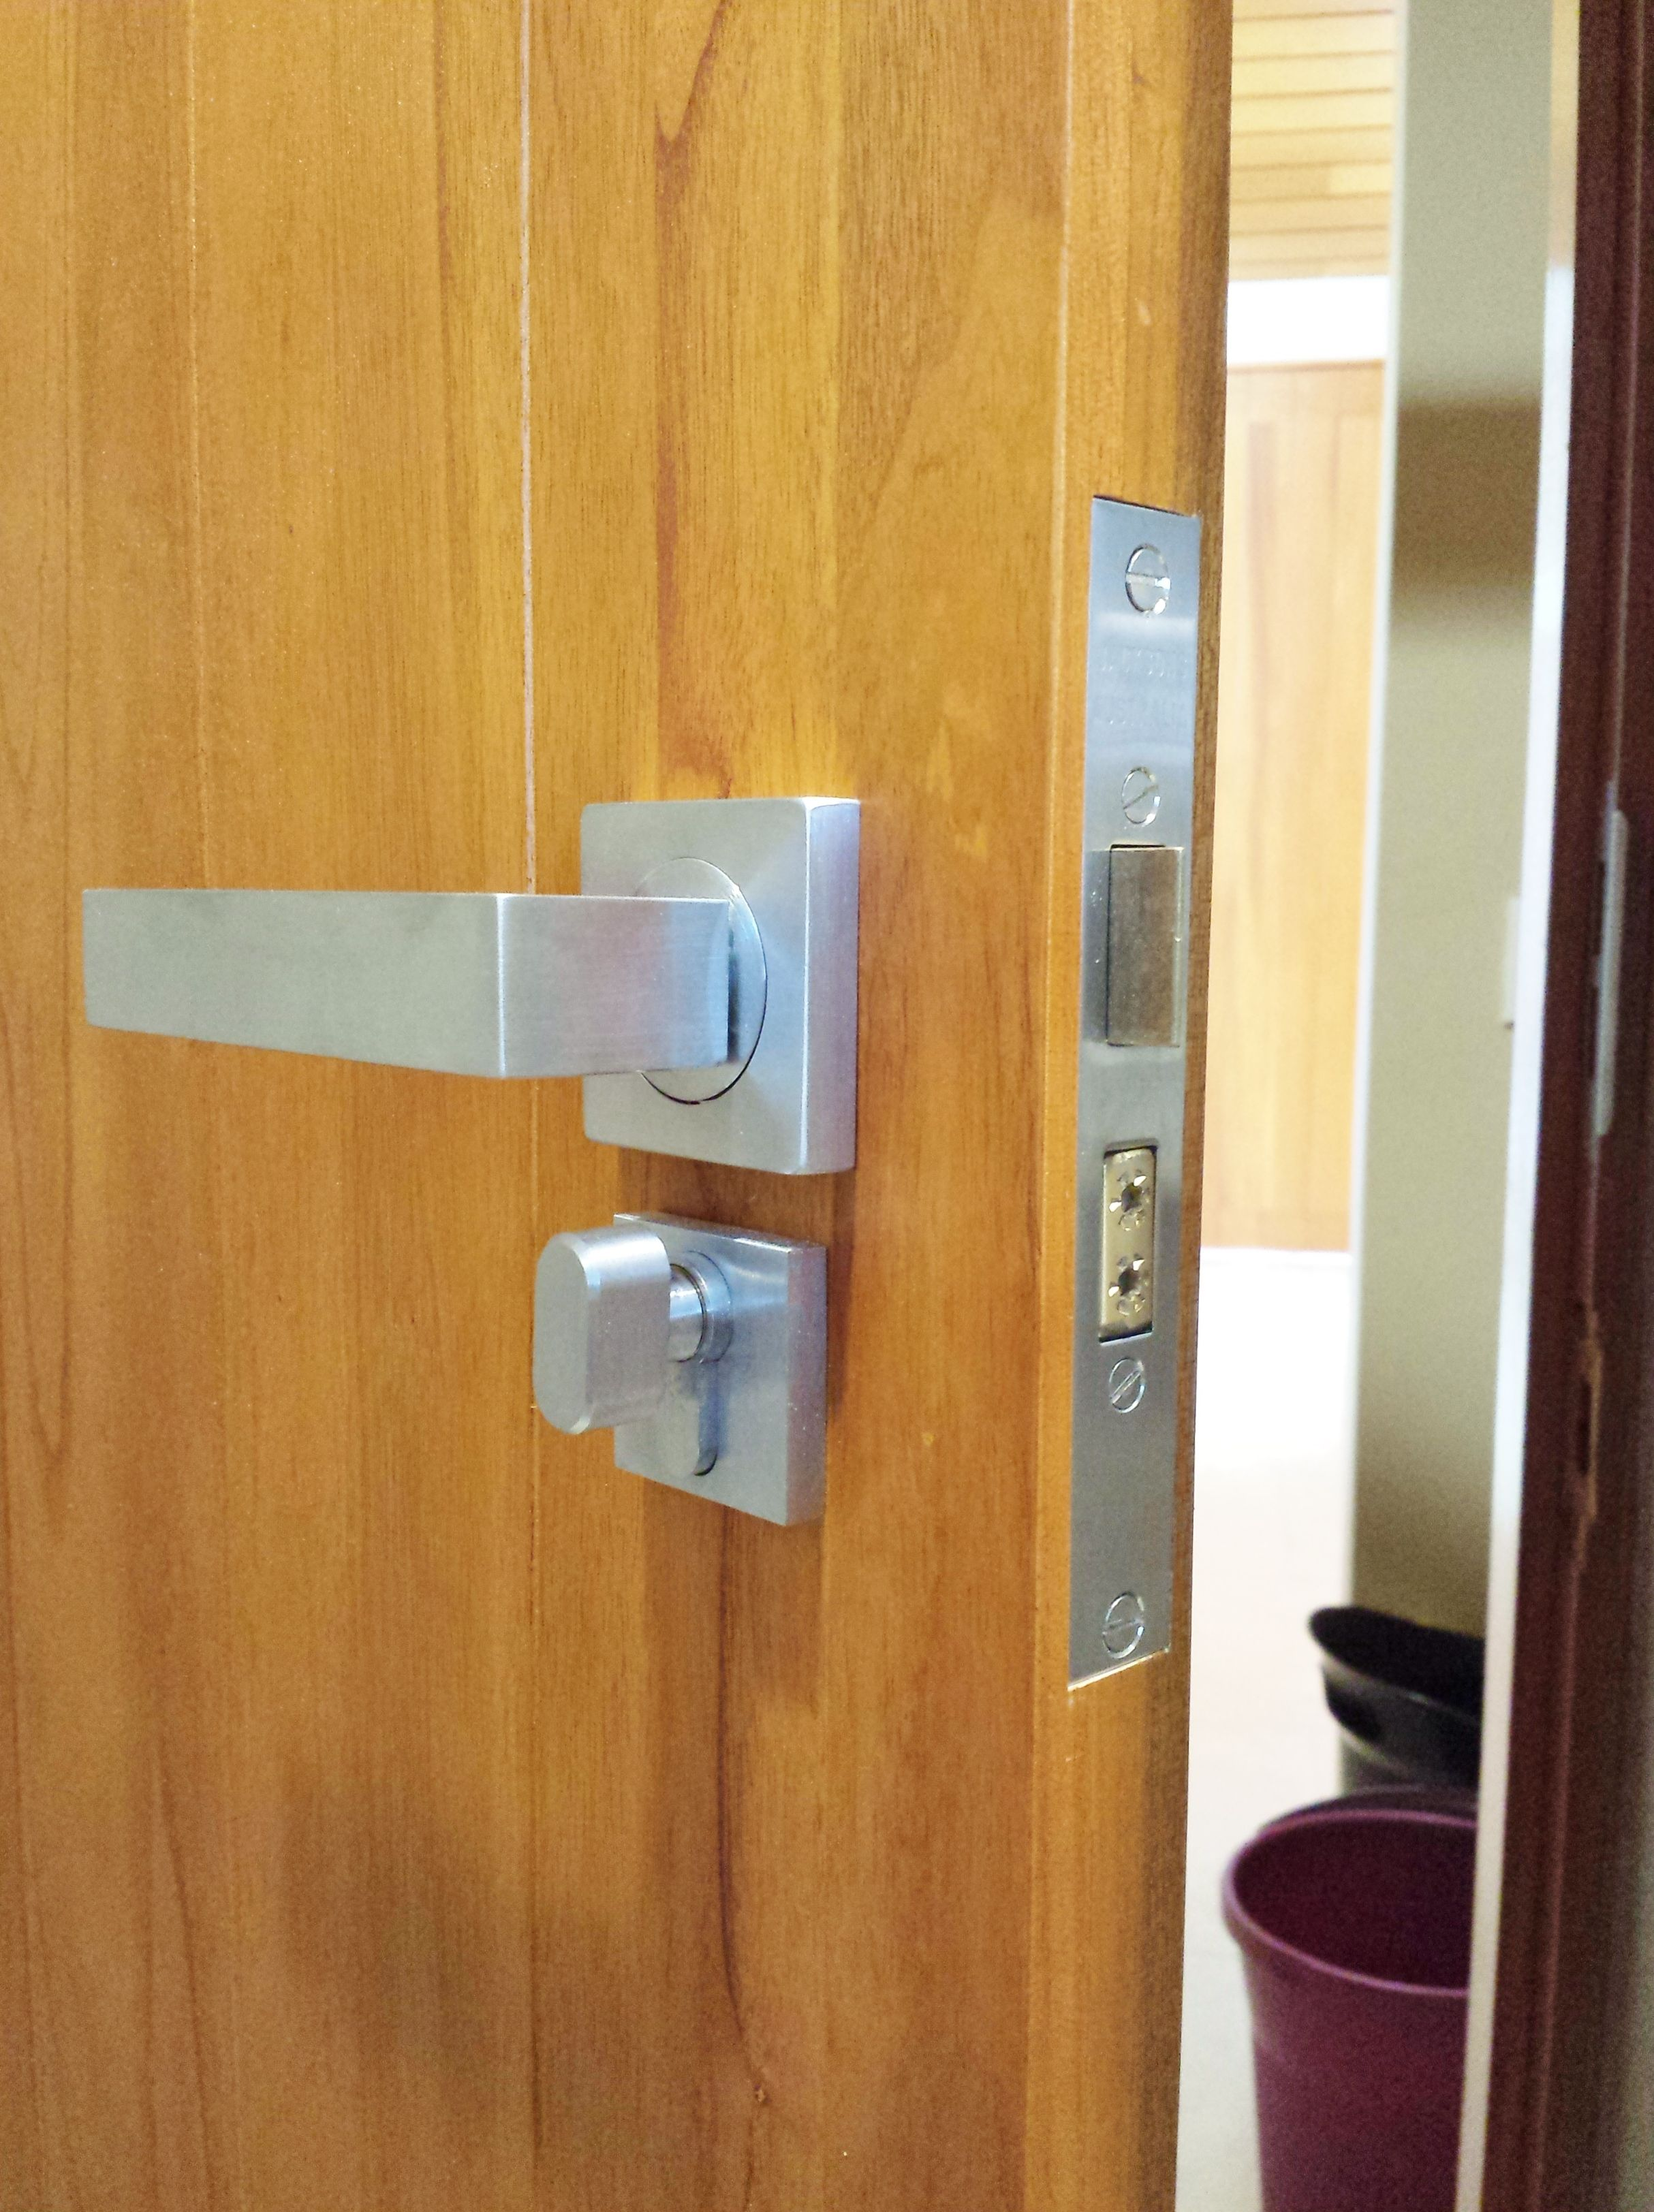 Explore Door Handles Locks and more! & Parisi - Quadro lever handles on a Jacksons mortice lock with a ... pezcame.com